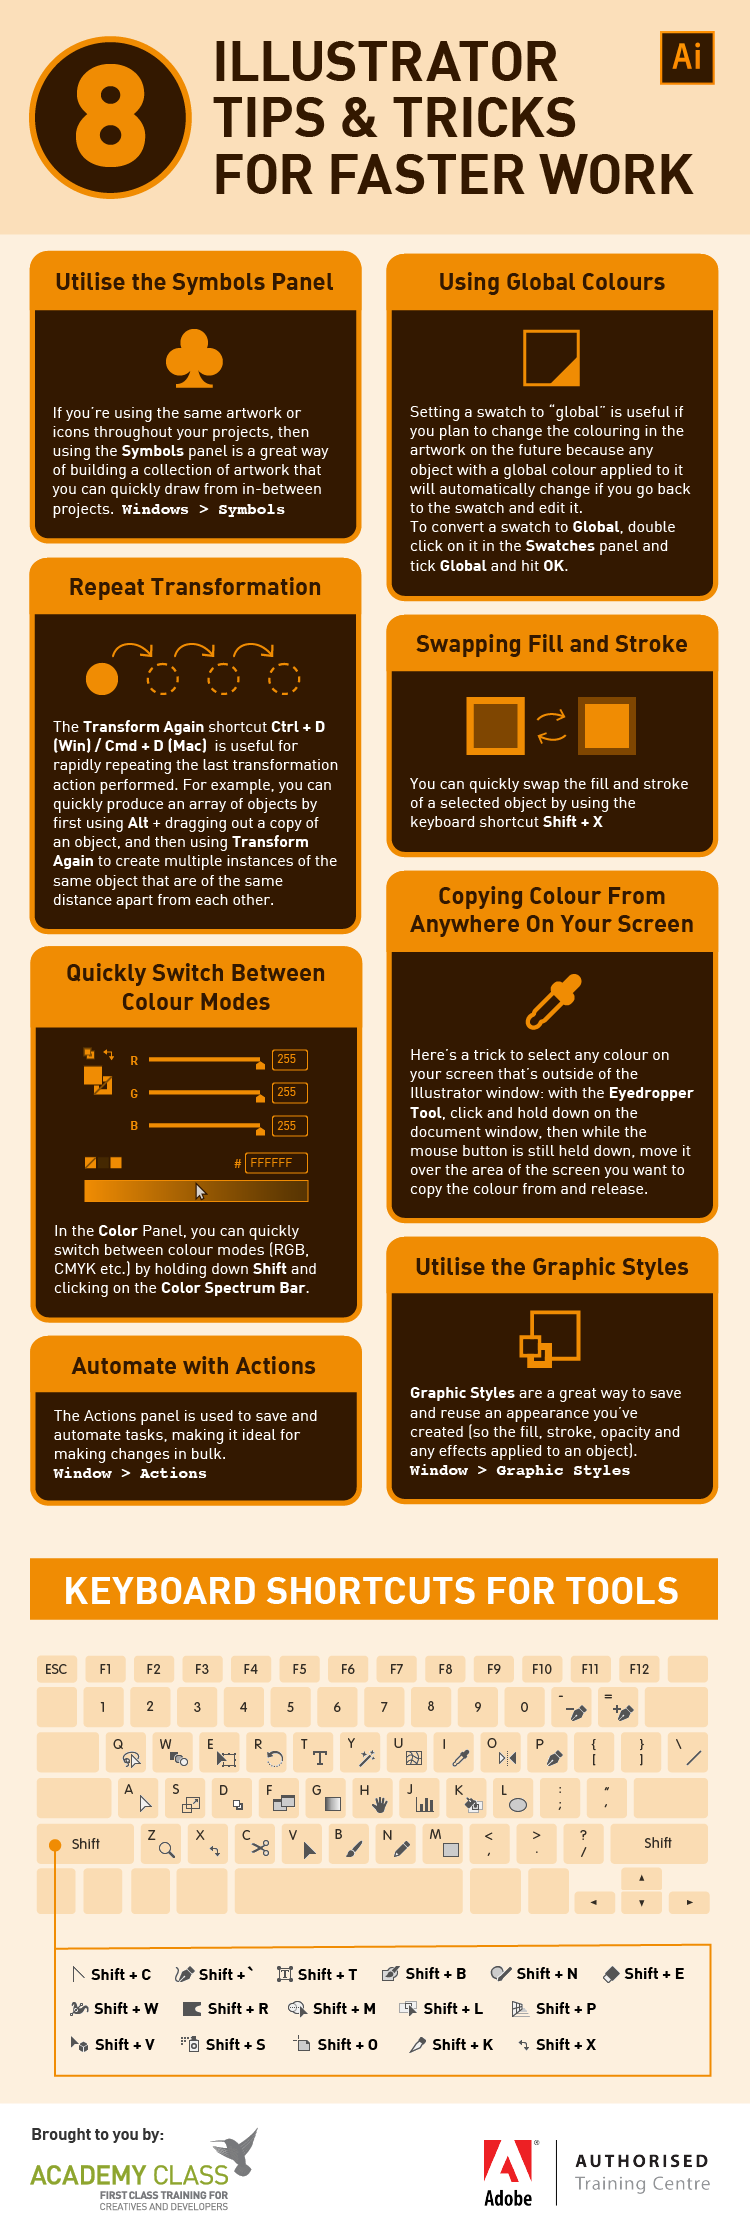 Adobe Illustrator Magic: 8 Amazing Tips and Tricks - Infographic